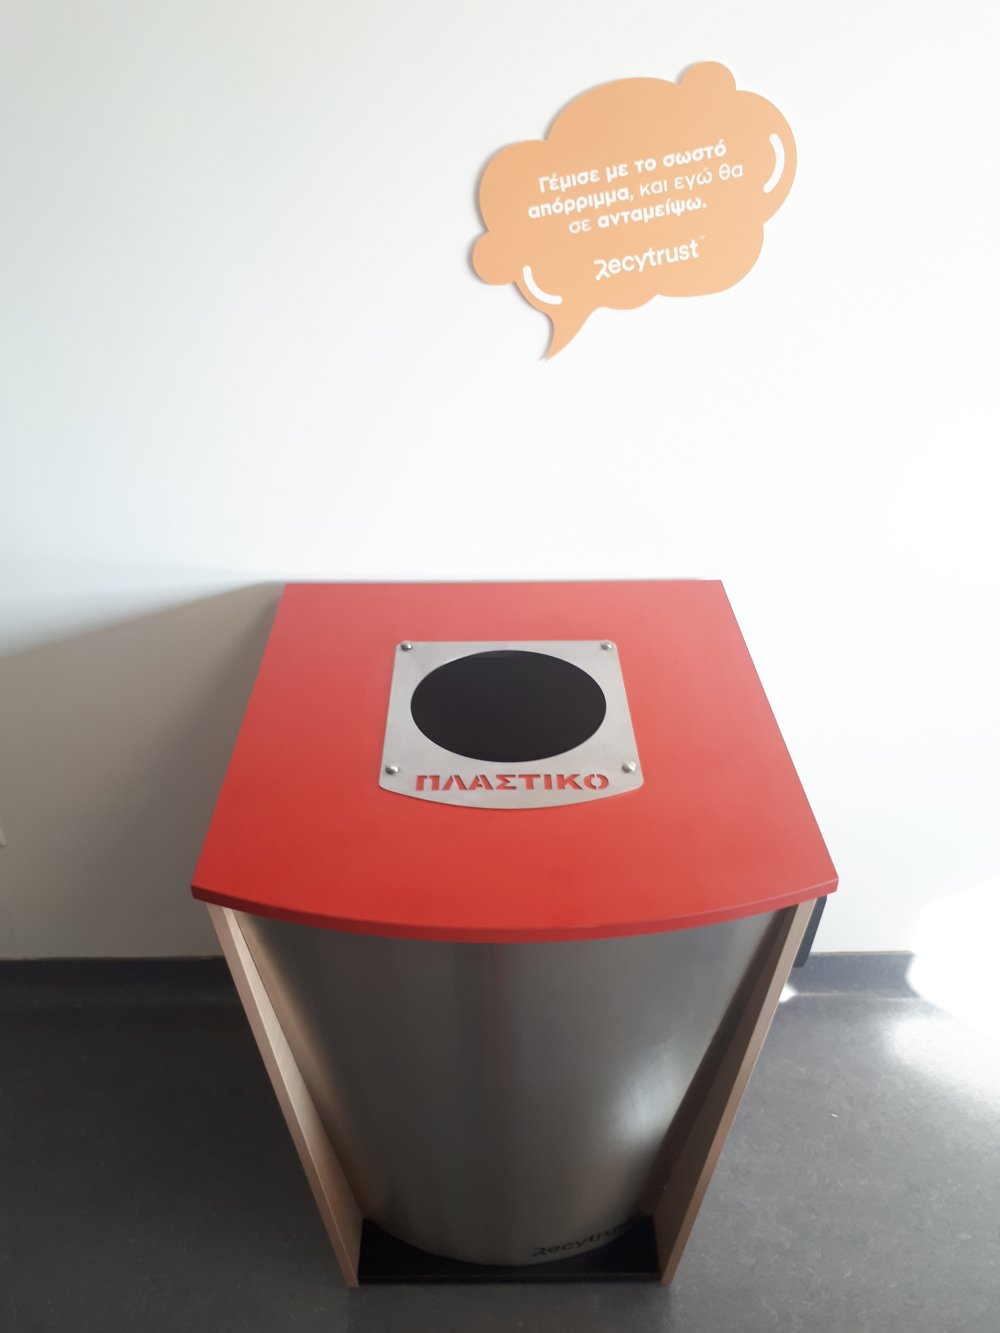 Recystrust has developed a smart recycling bin that is already being tested in City Hall and public schools.